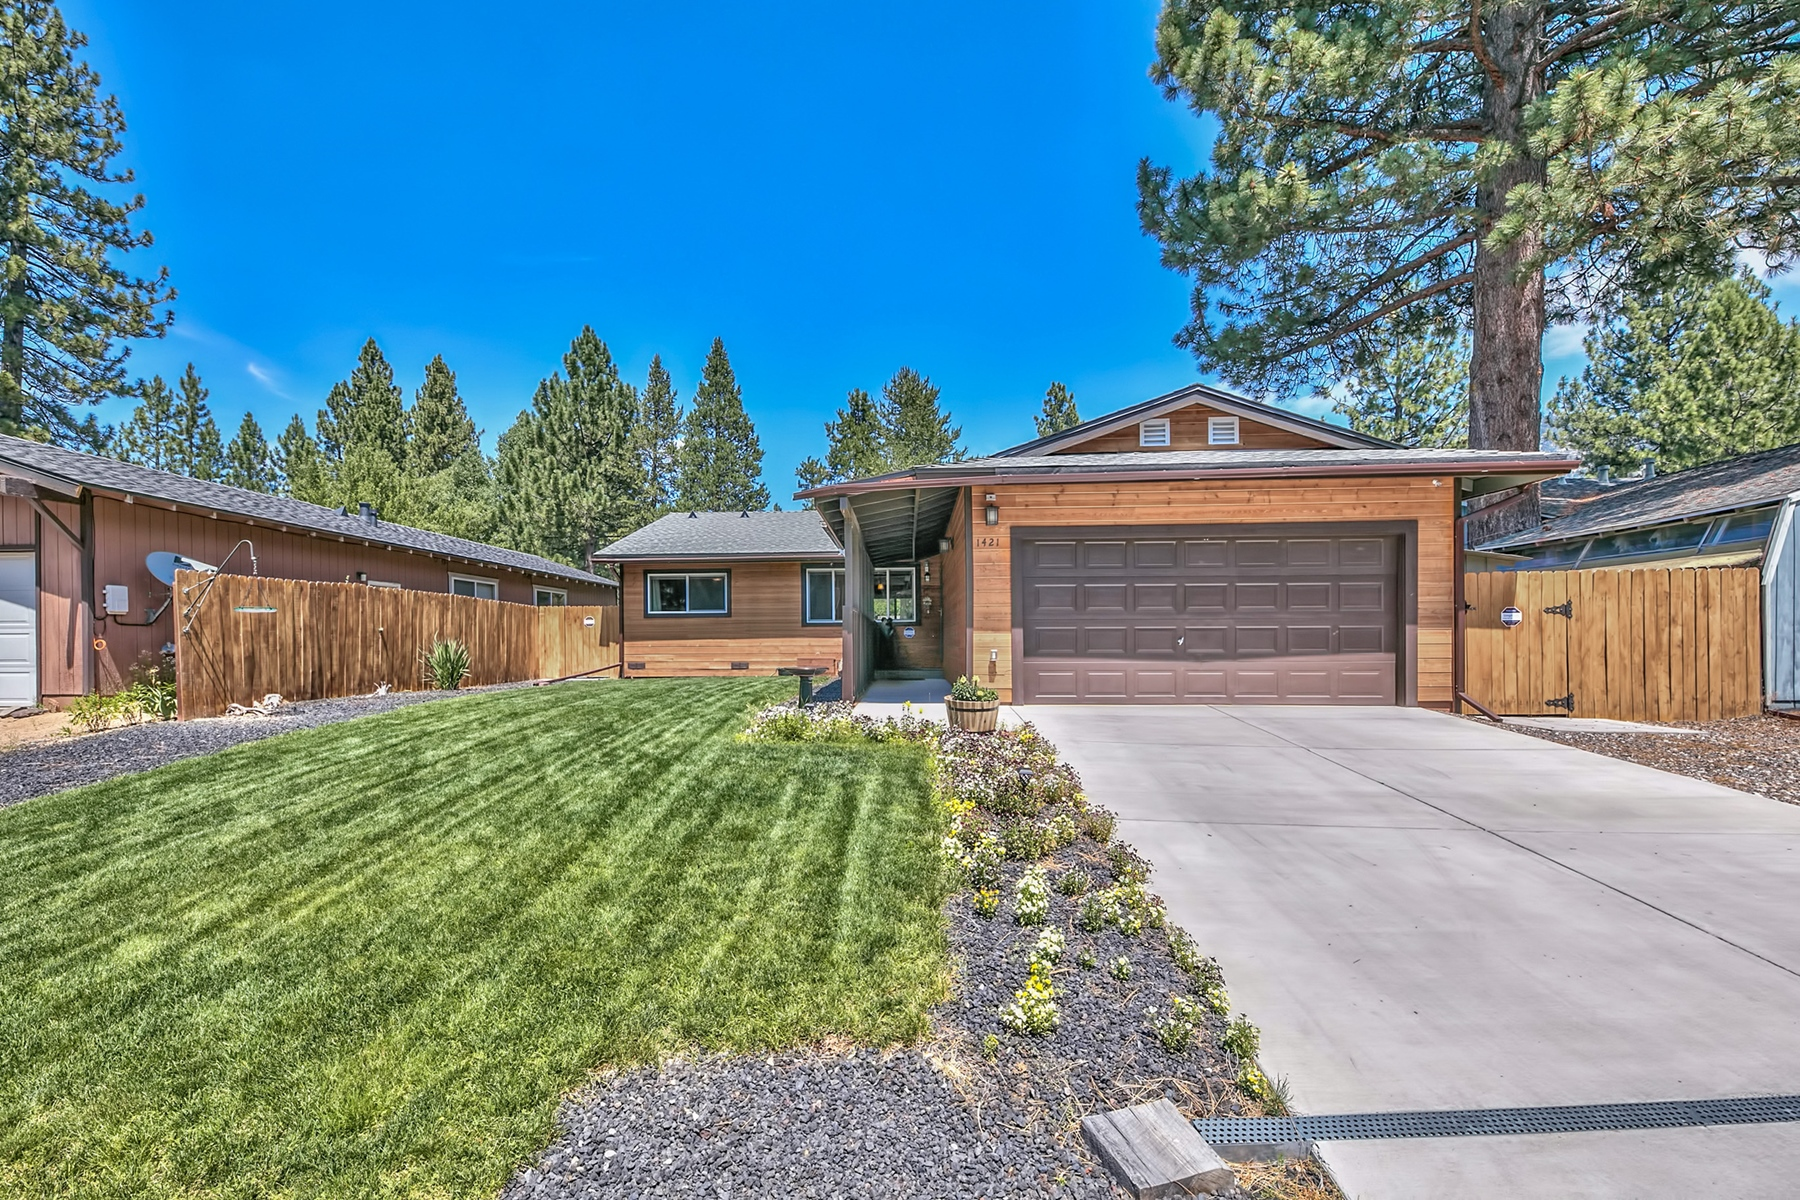 Additional photo for property listing at 1421 Matheson Drive, South Lake Tahoe CA 96150 1421 Matheson Drive South Lake Tahoe, California 96150 United States